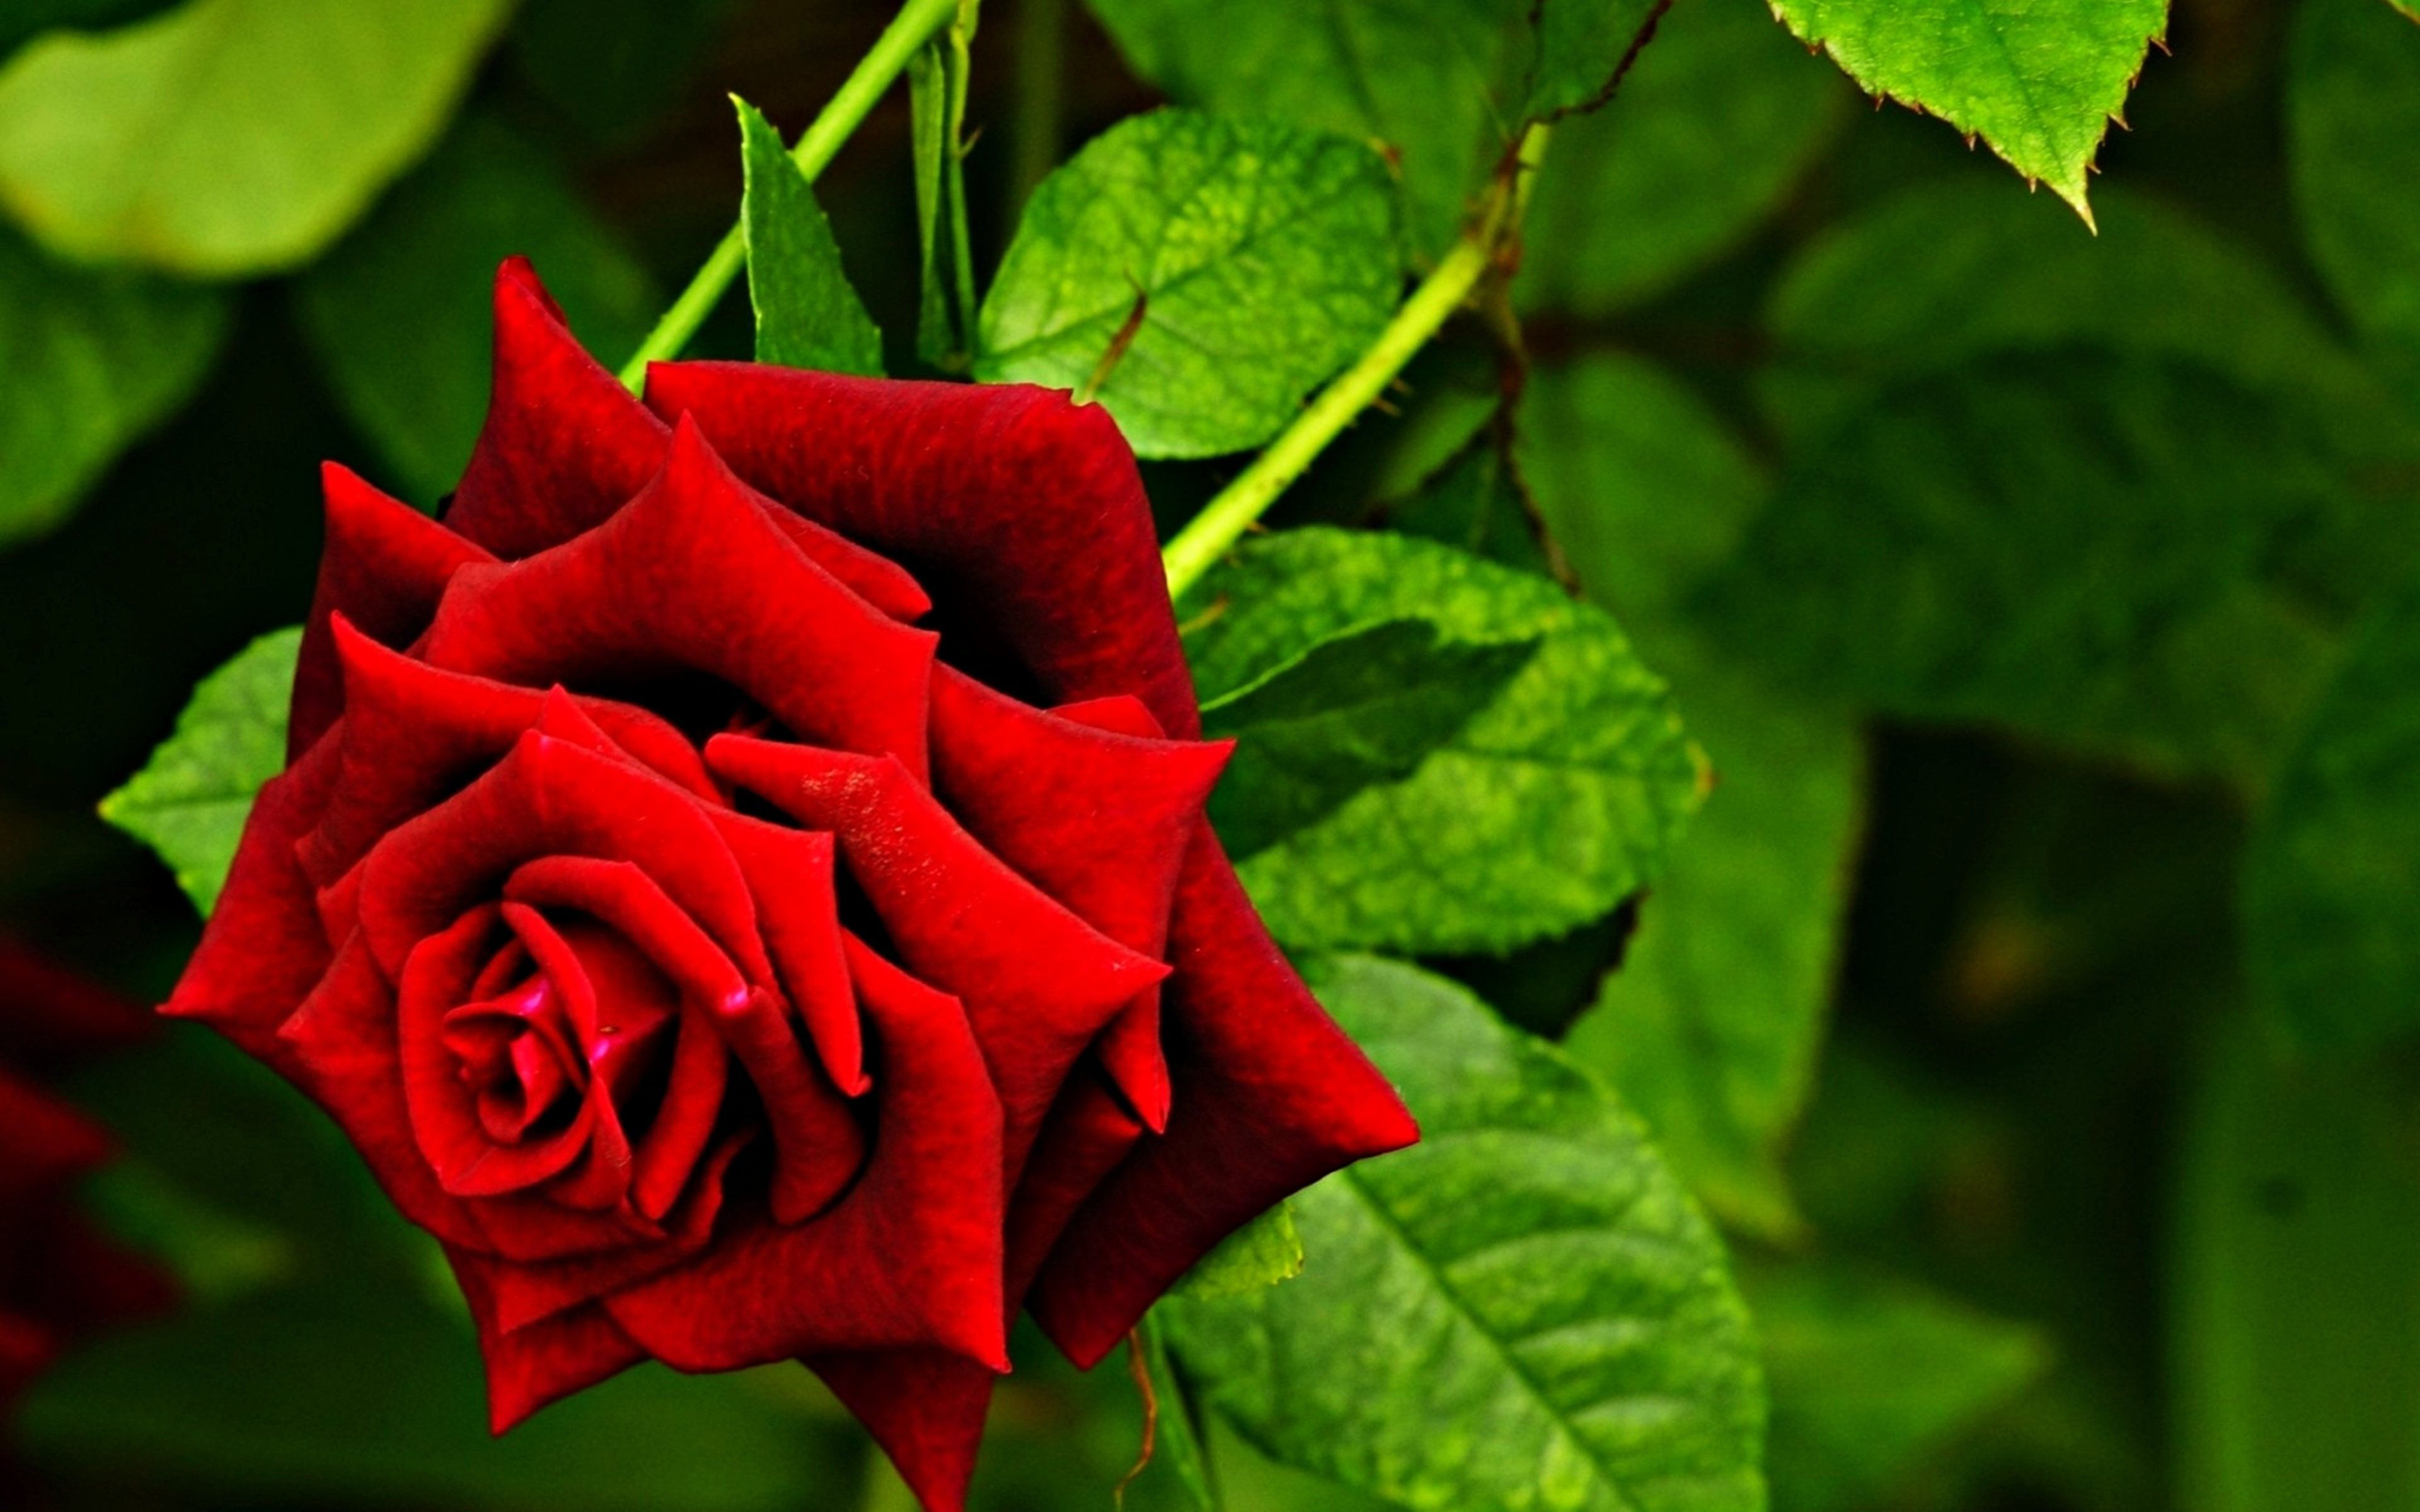 Photos Of Beauty Flowers Lovely Hd Flower Love Naturered Very Red ...